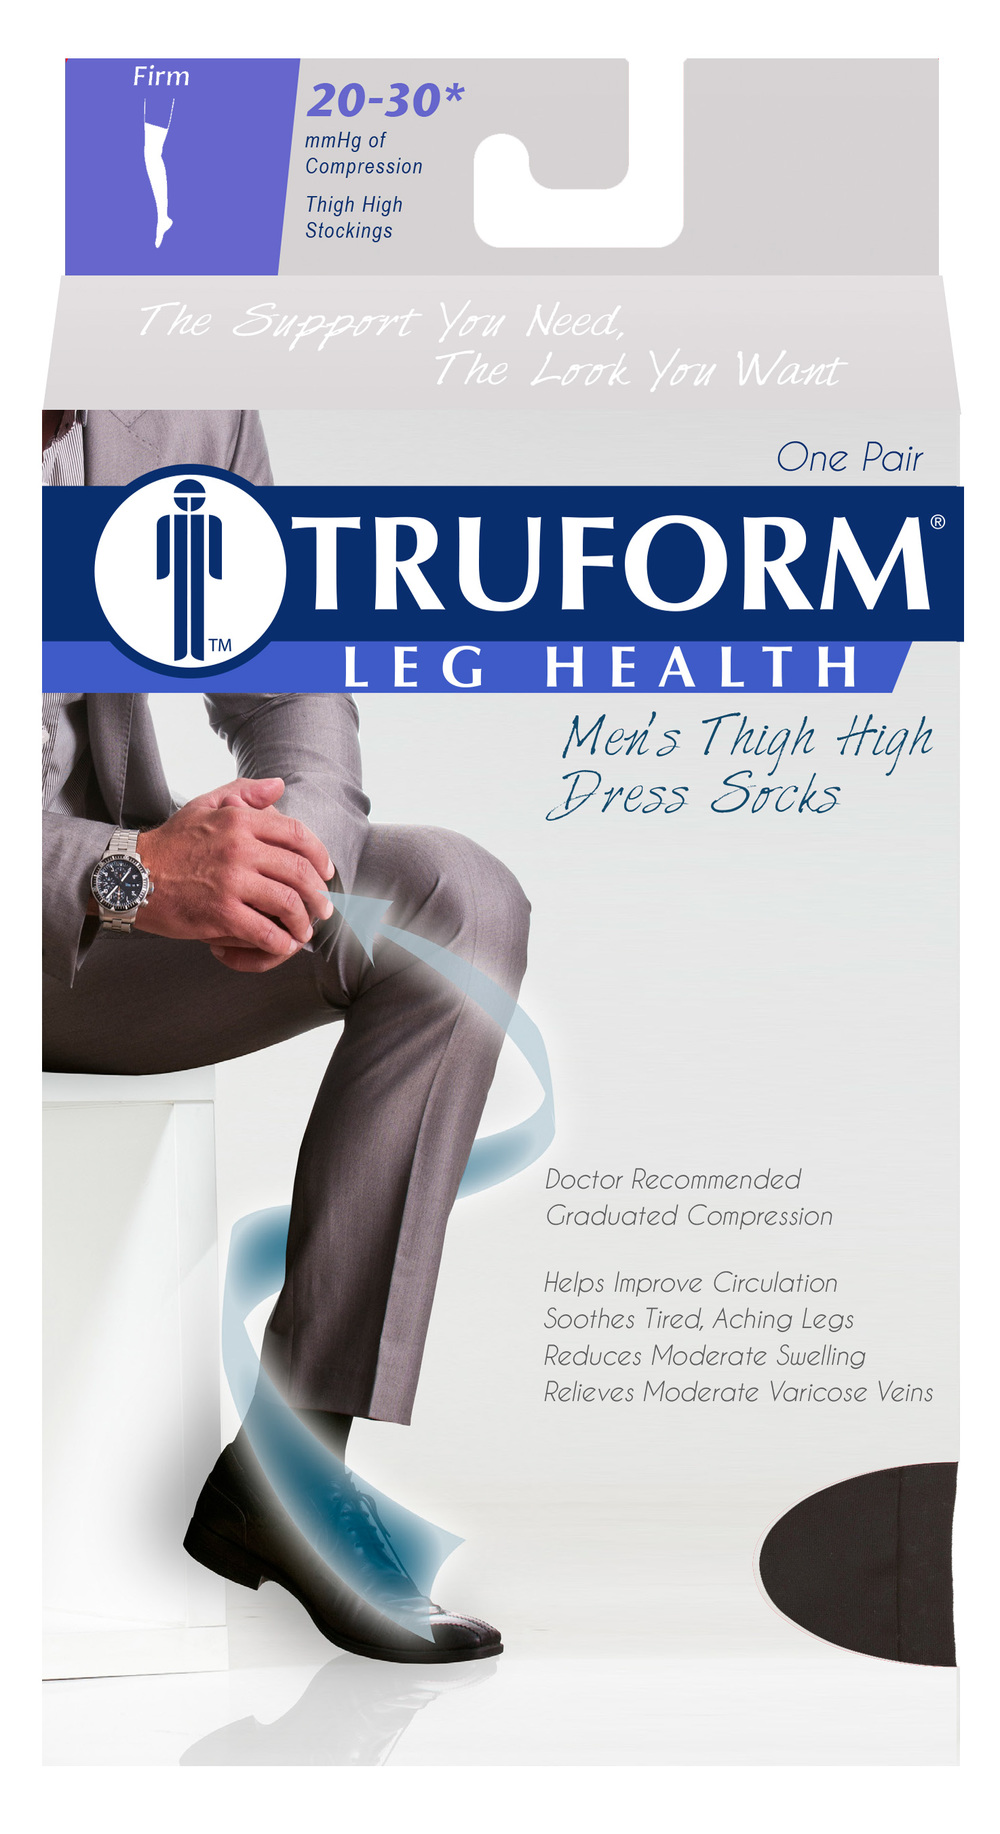 Truform, 1945, 20-30 mmHg, Compression, Men's, Thigh High, Dress Sock, Package